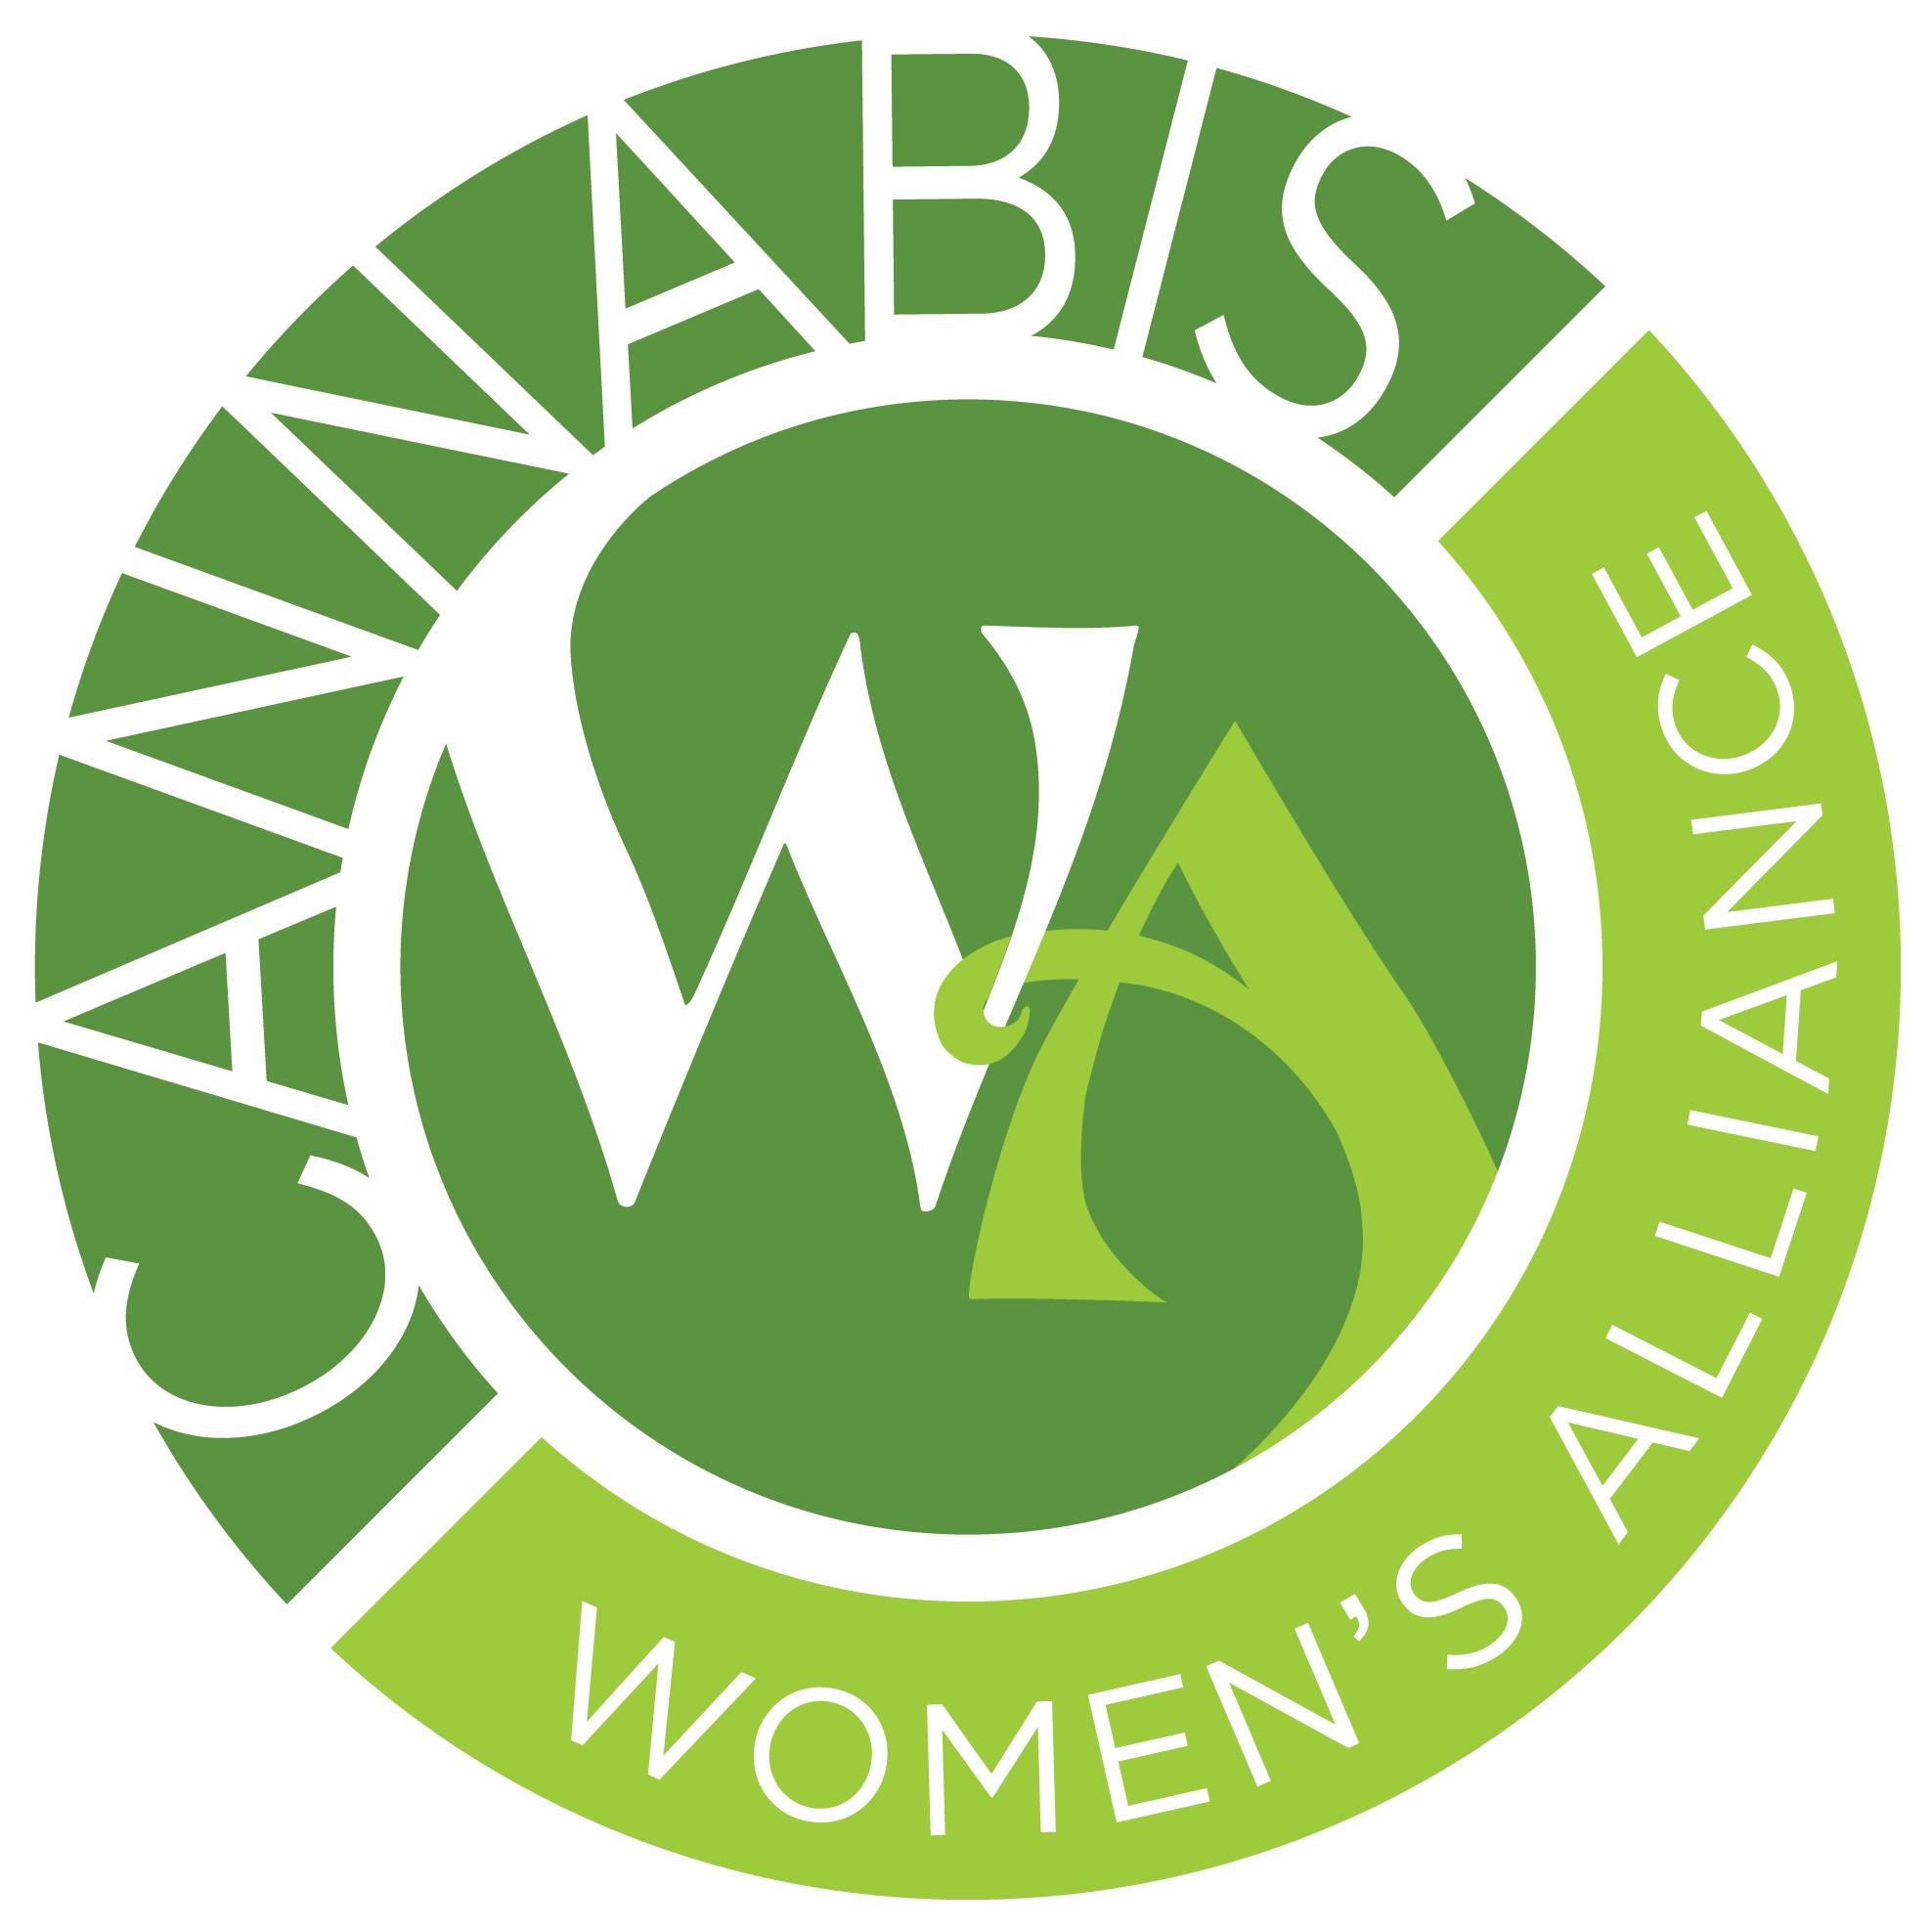 cannabis-womens-alliance-round-logo.jpg